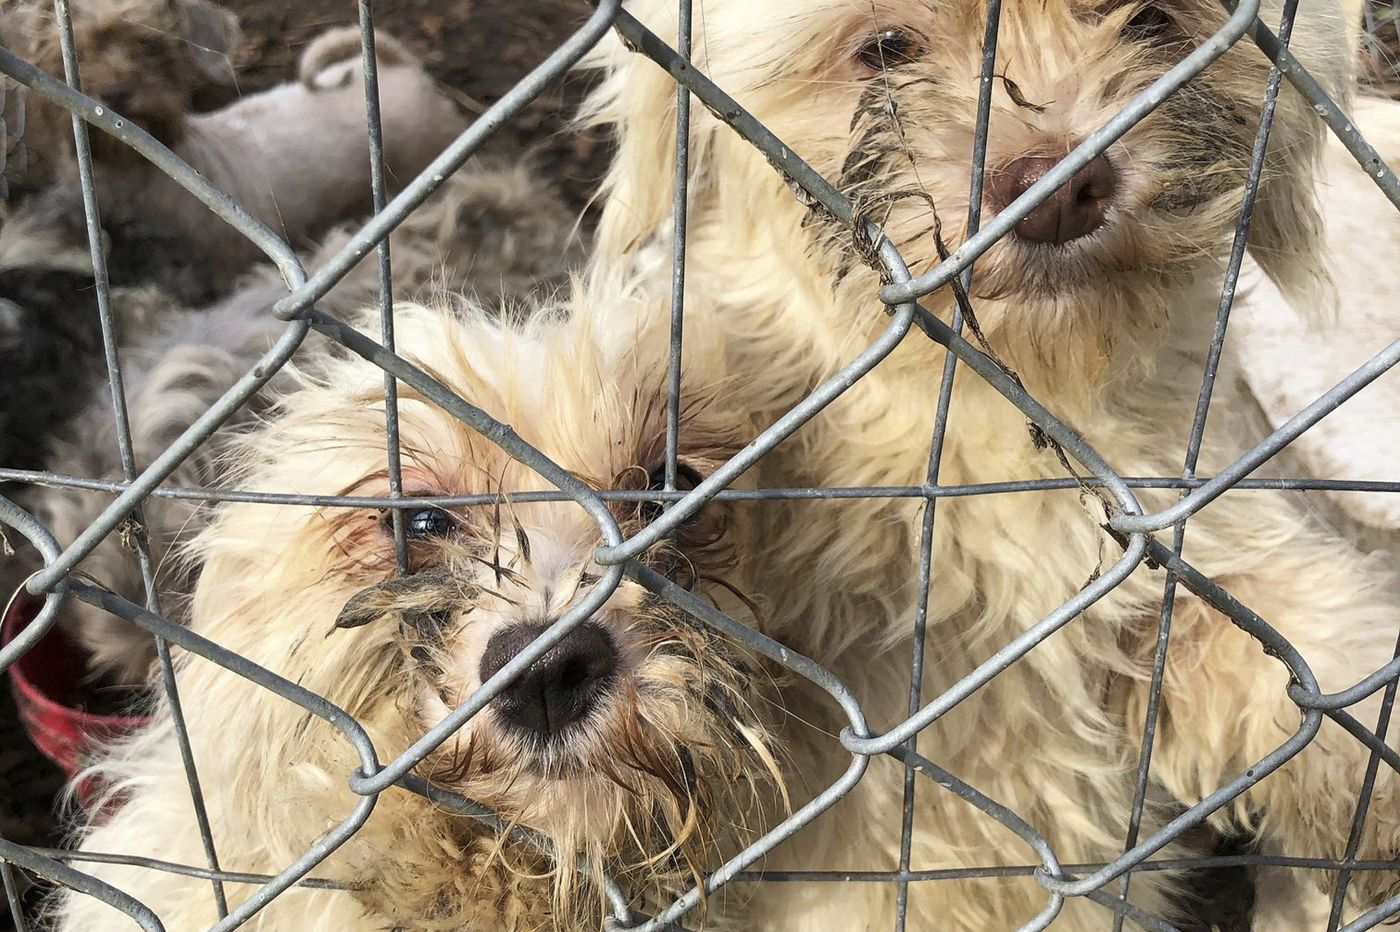 Burlco woman indicted on animal cruelty charges